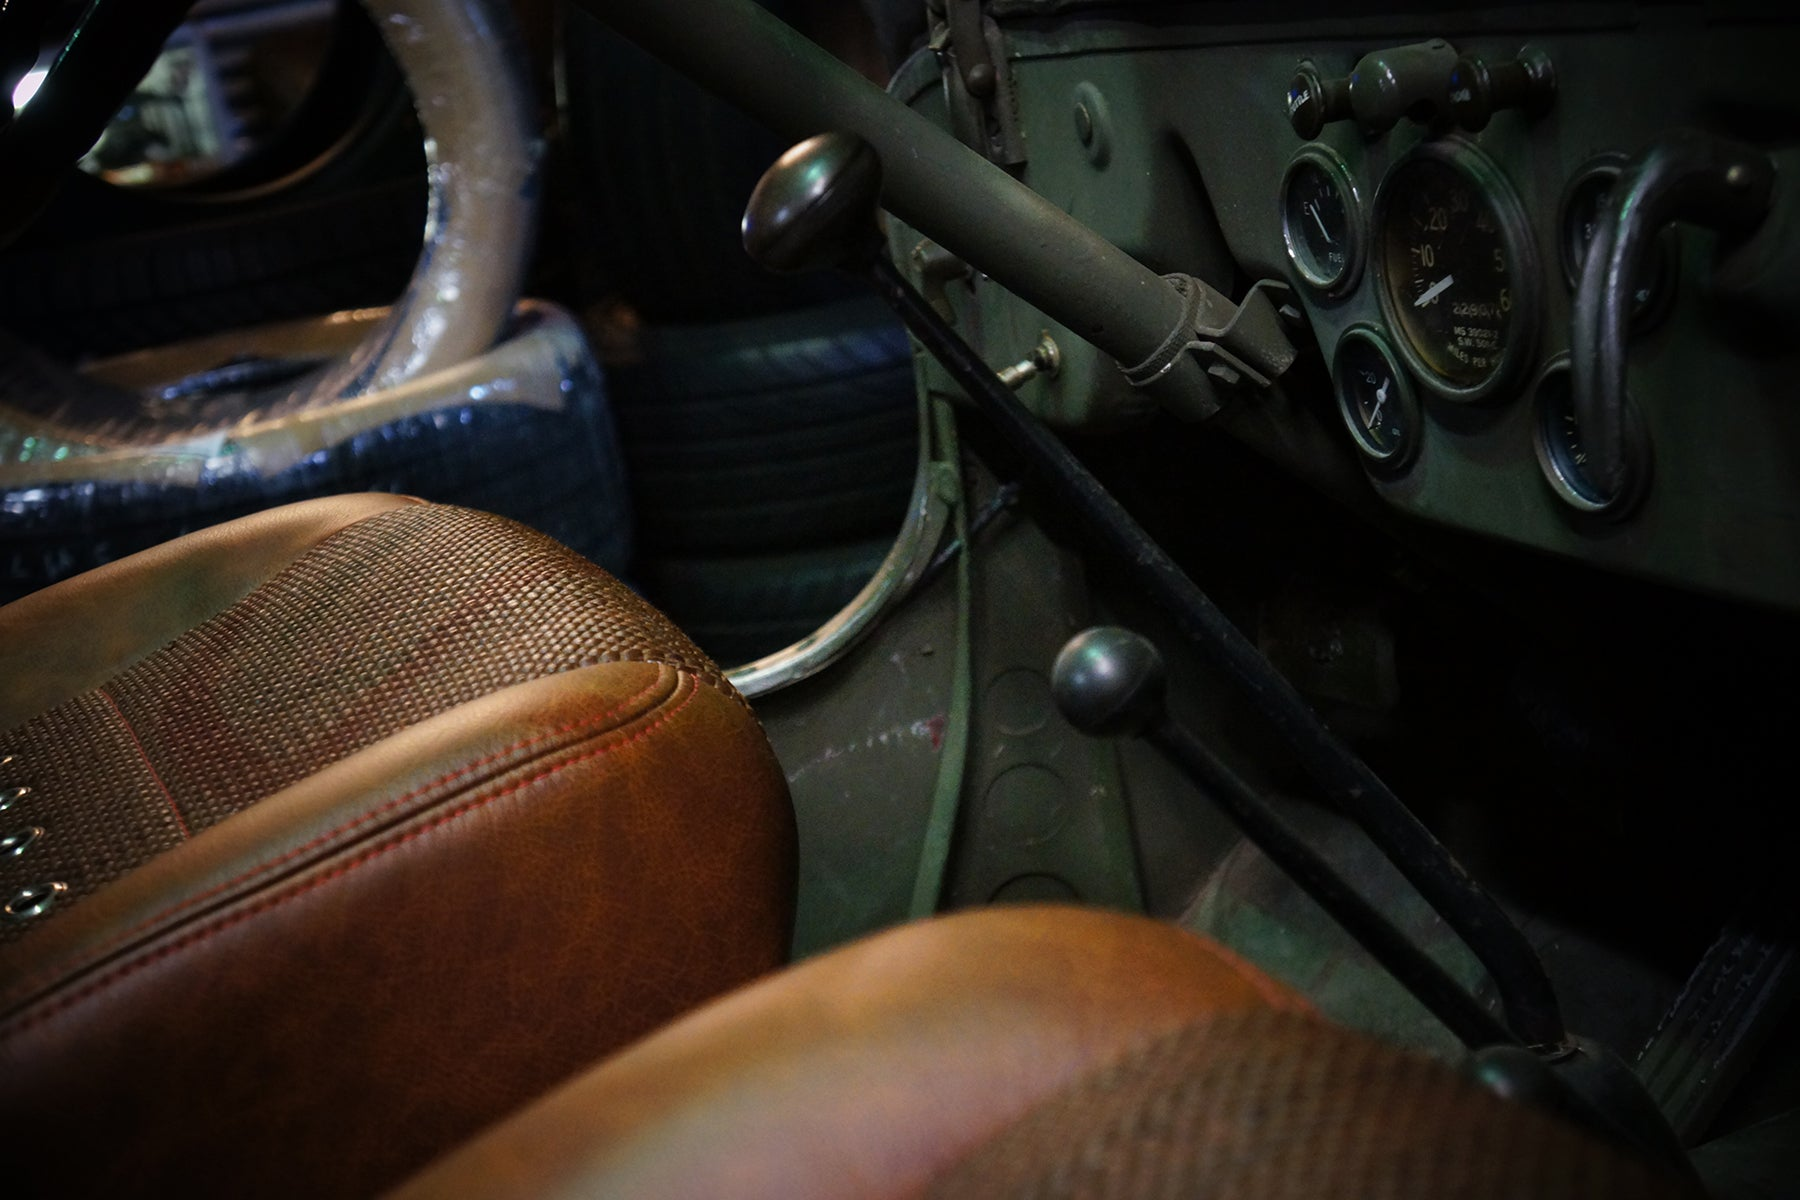 Relicate Rich Clay Distressed Leather Hides in Jeep bucket seats with woven leather